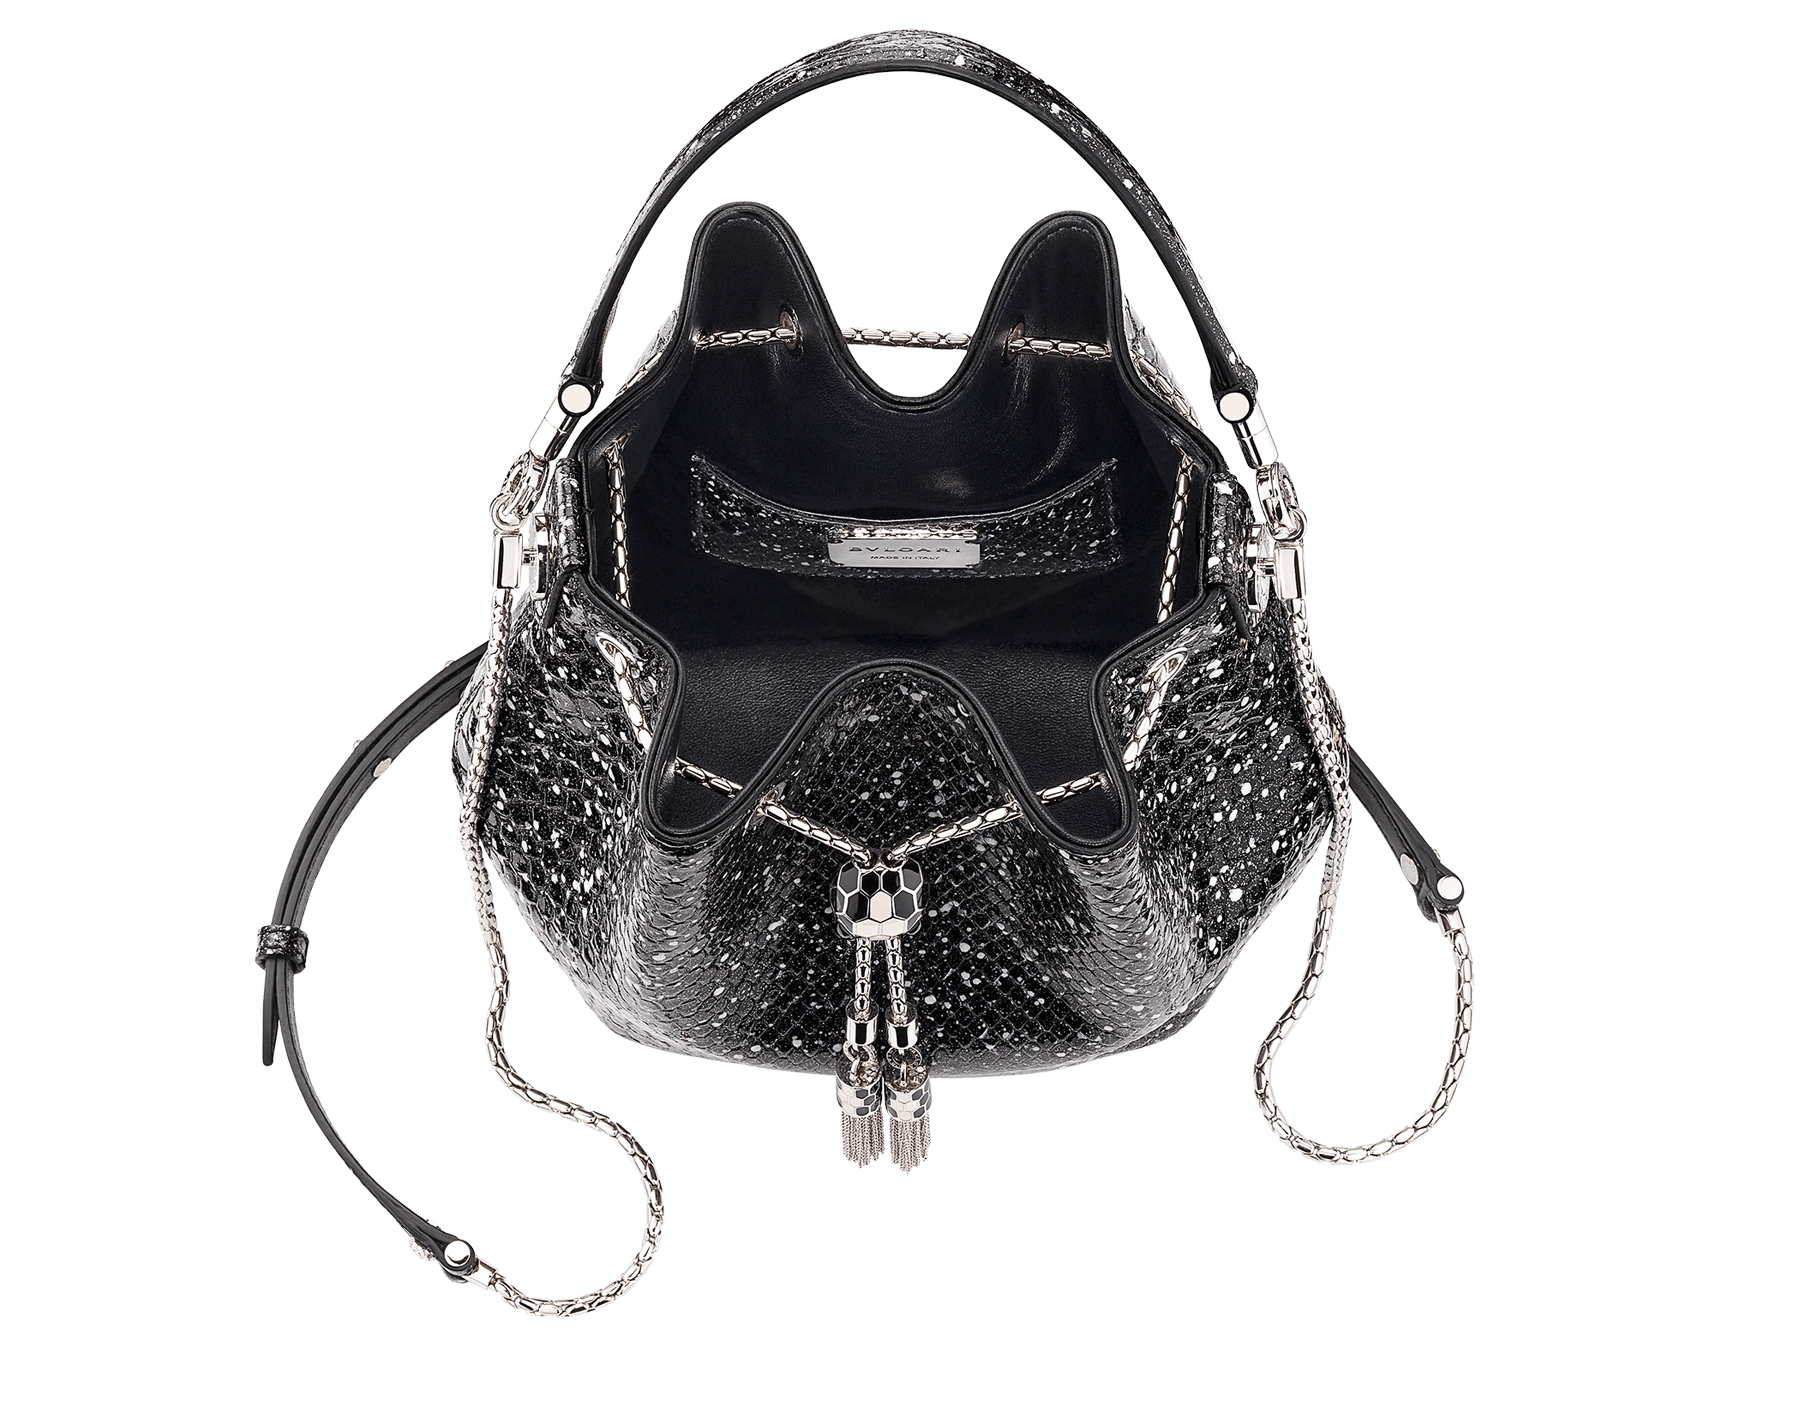 Serpenti Forever bucket bag in black and white Cosmic python skin and black nappa inner lining. Snakehead closure in palladium plated brass decorated with black and white enamel, and black onyx eyes. 288112 image 4